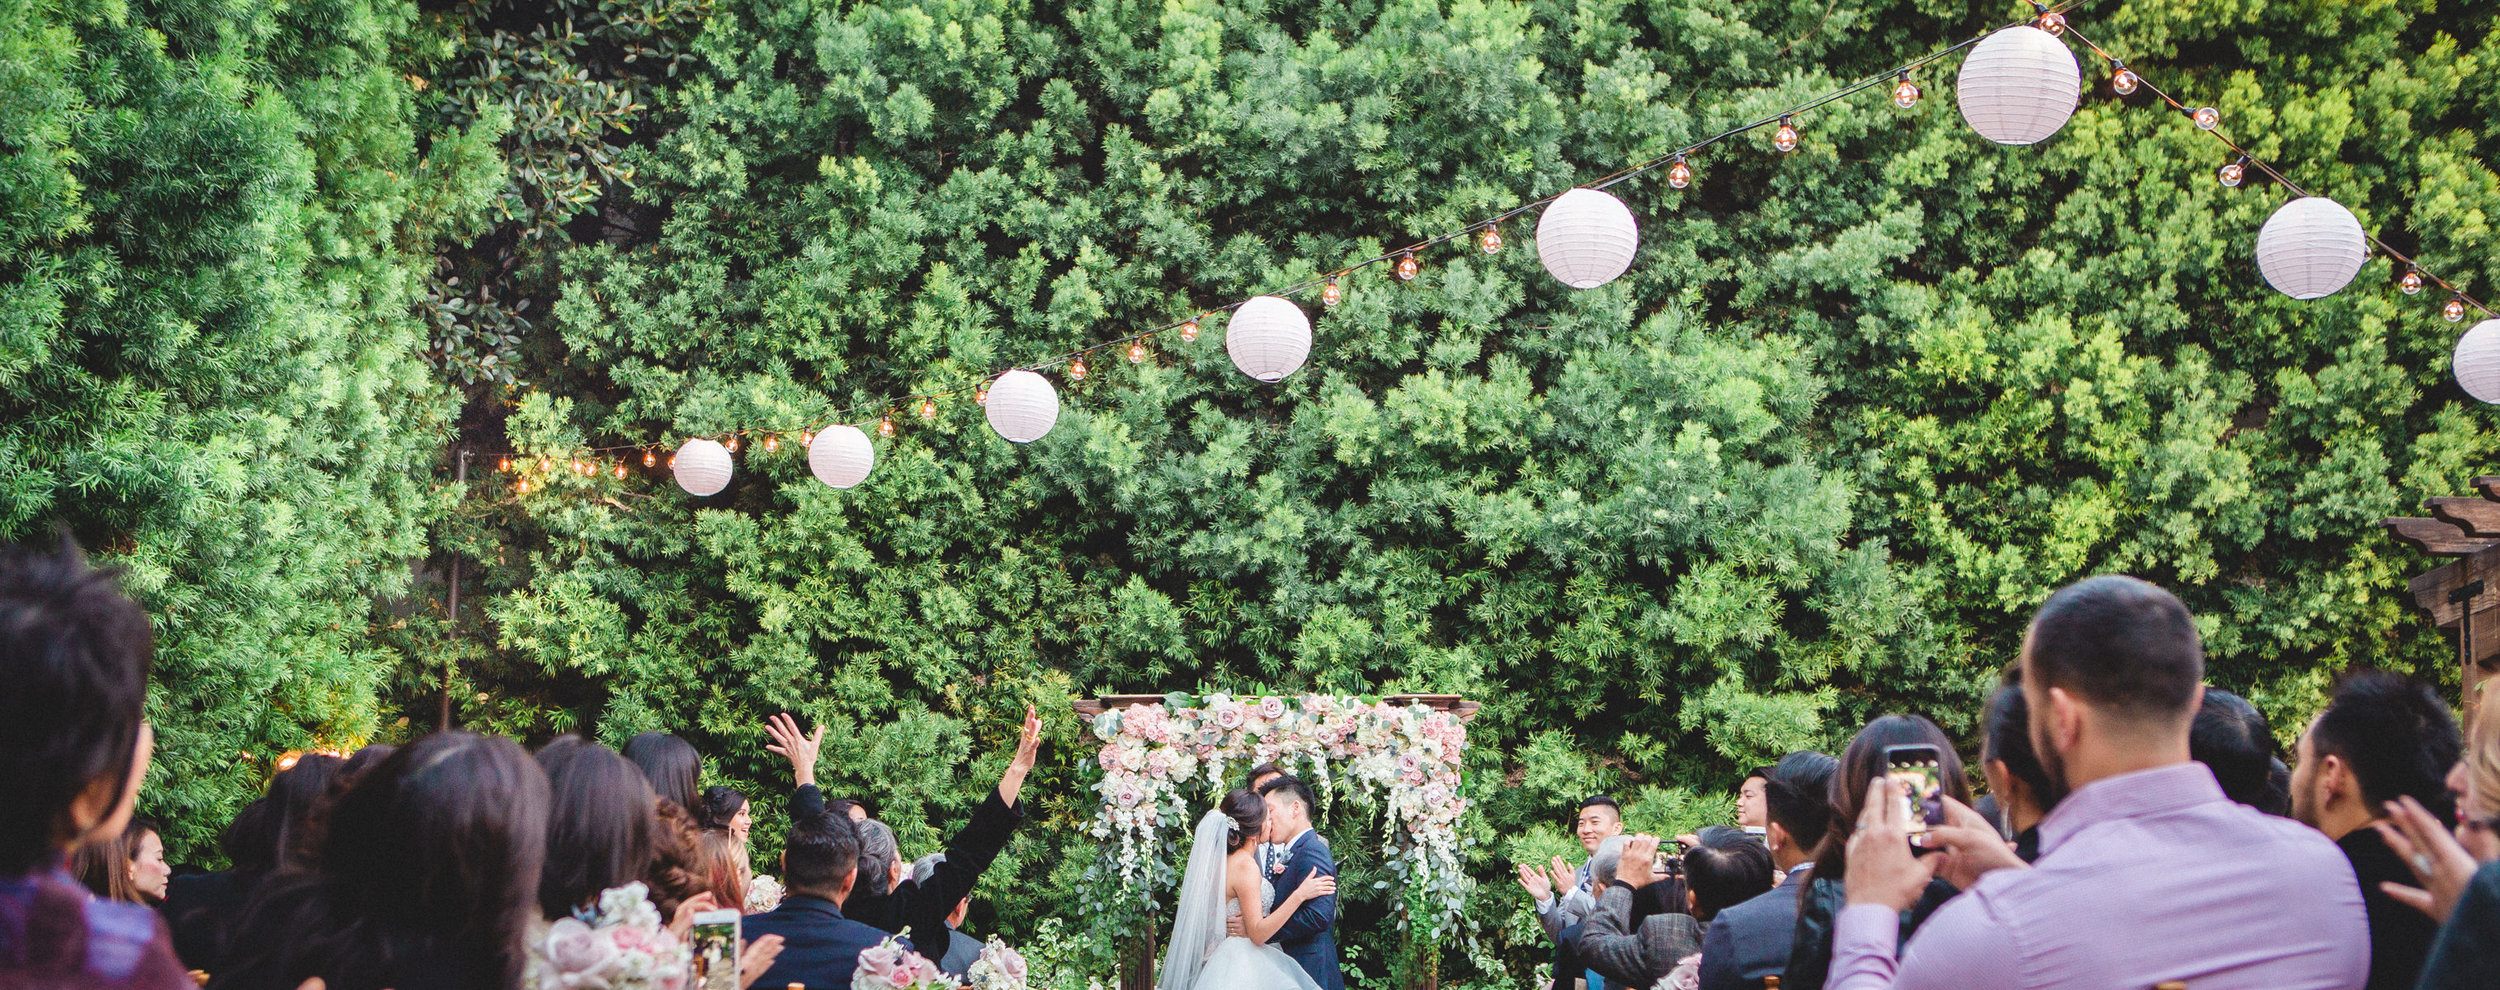 the-light-and-glass-wedding-engagement-photography-20151212-001-2.jpg